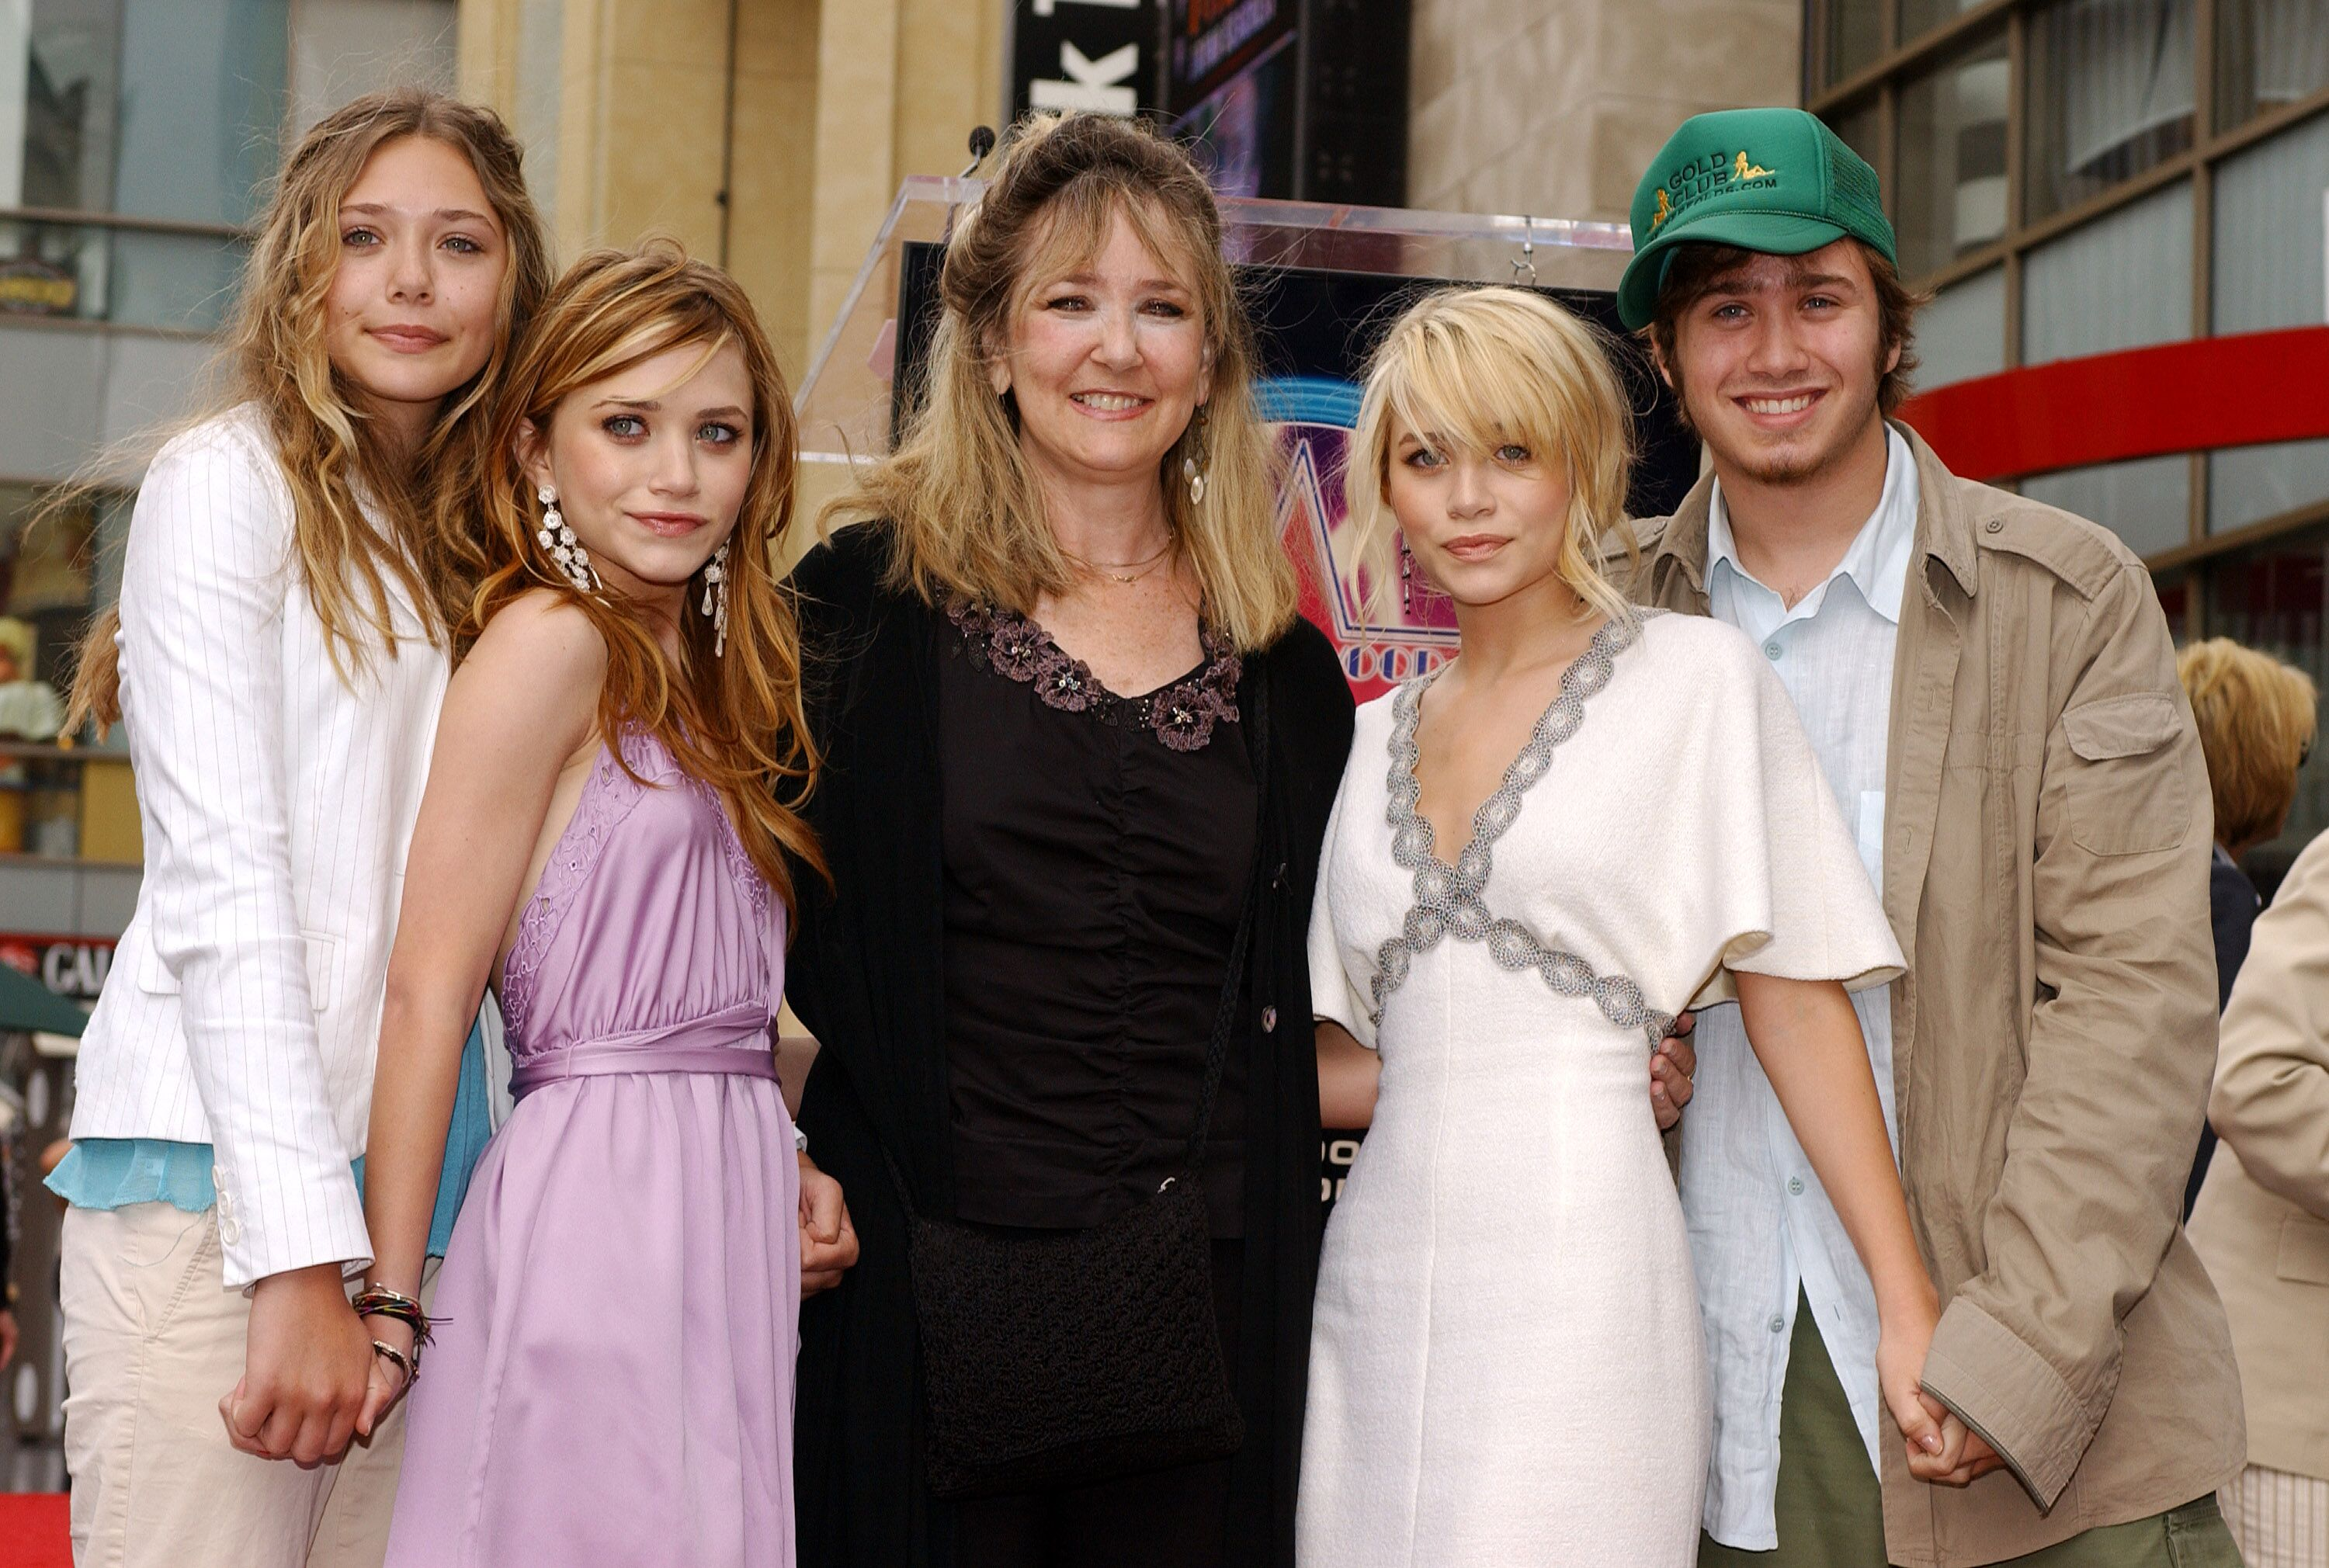 The Olsens -- Elizabeth, Mary-Kate, mother Jarnette, Ashley and brother Trent Olsen -- at the ceremony honoring Ashley and Mary-Kate with a star on the Hollywood Walk of Fame in 2004 | Source: Getty Images